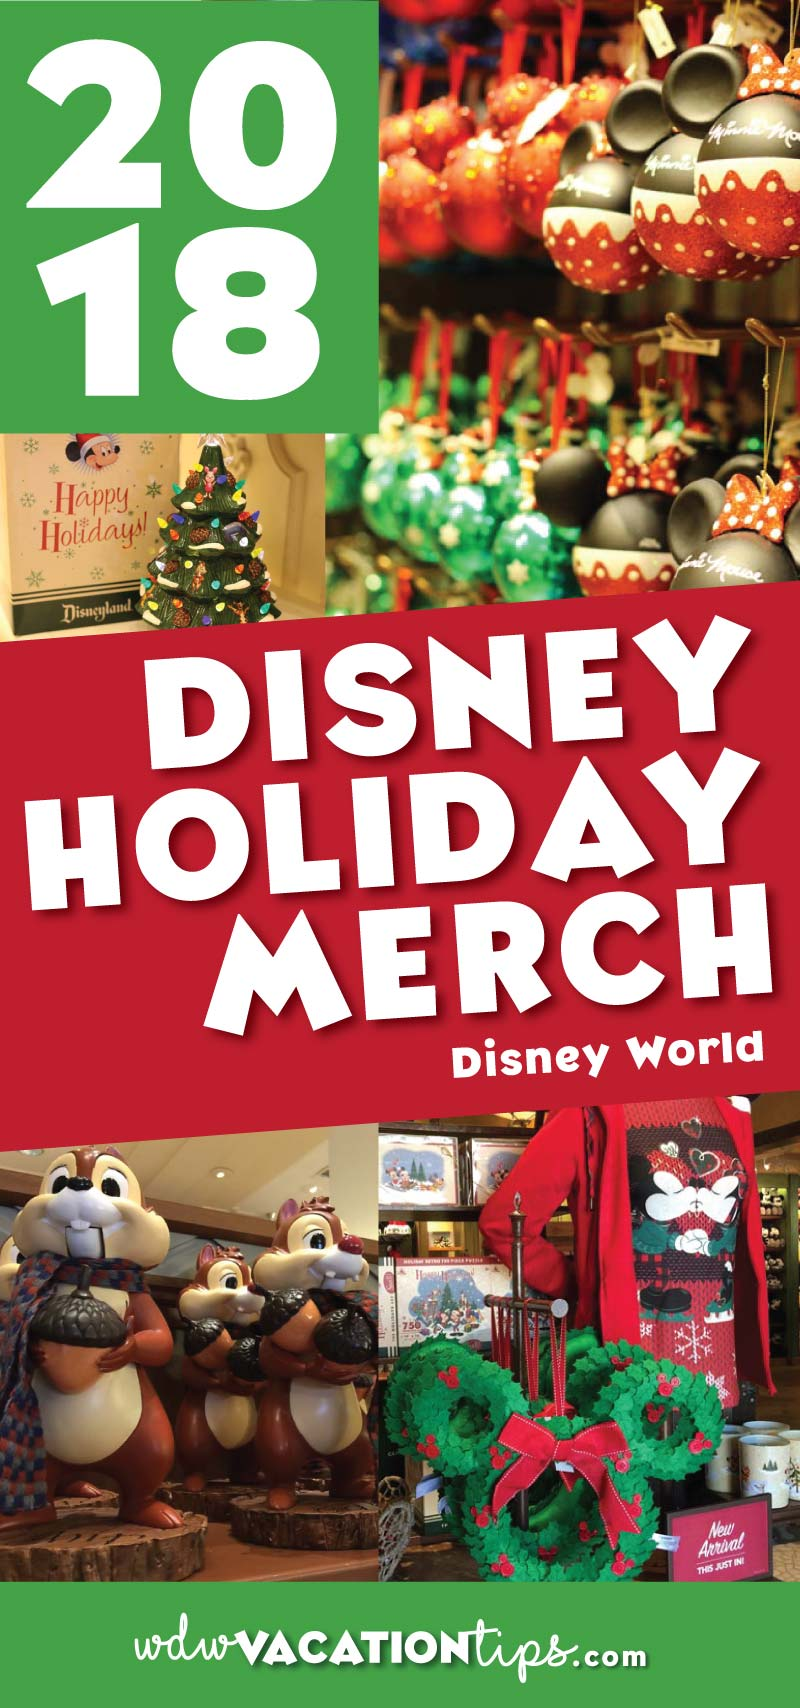 2017 disney world christmas merchandise  u2022 wdw vacation tips